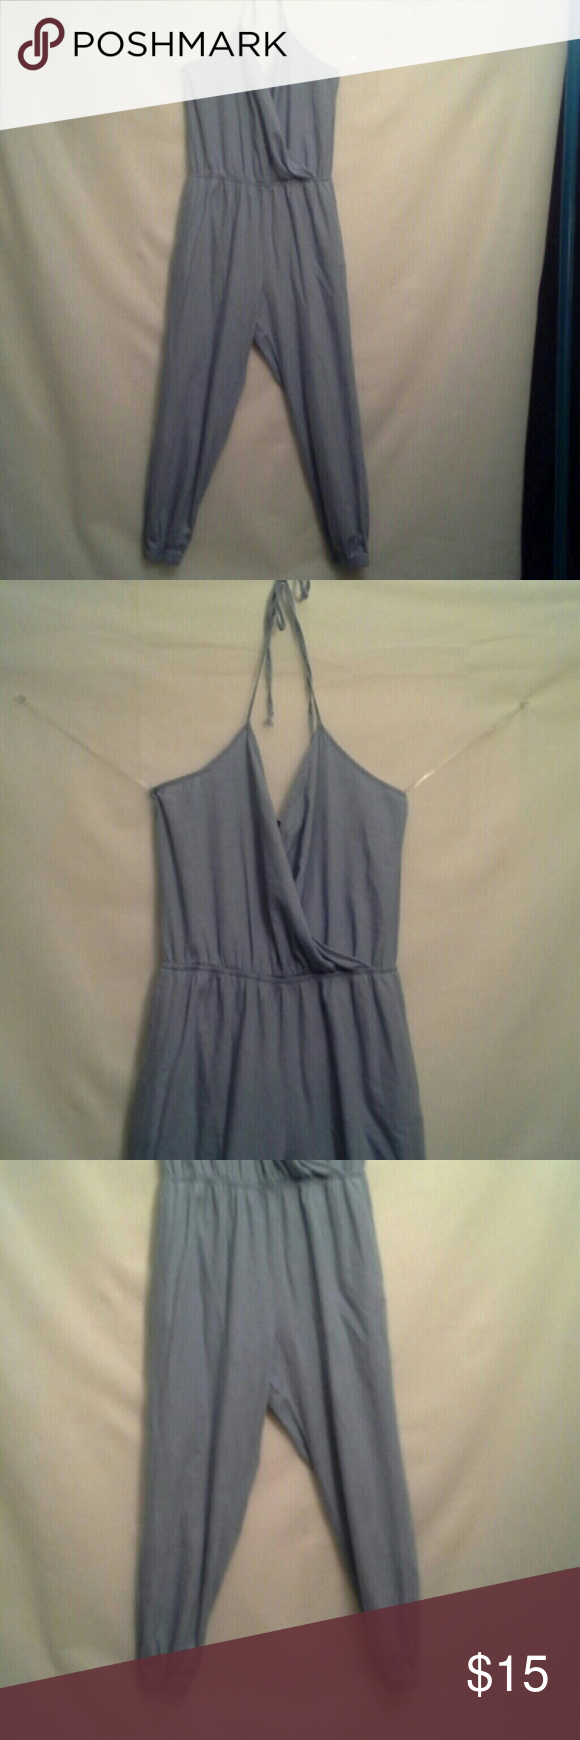 Lite Blue Halter Jumpsuit Gathered at waist and ankles. Ties around back of neck. Only worn to try on. NWOT Mimi Chica Other